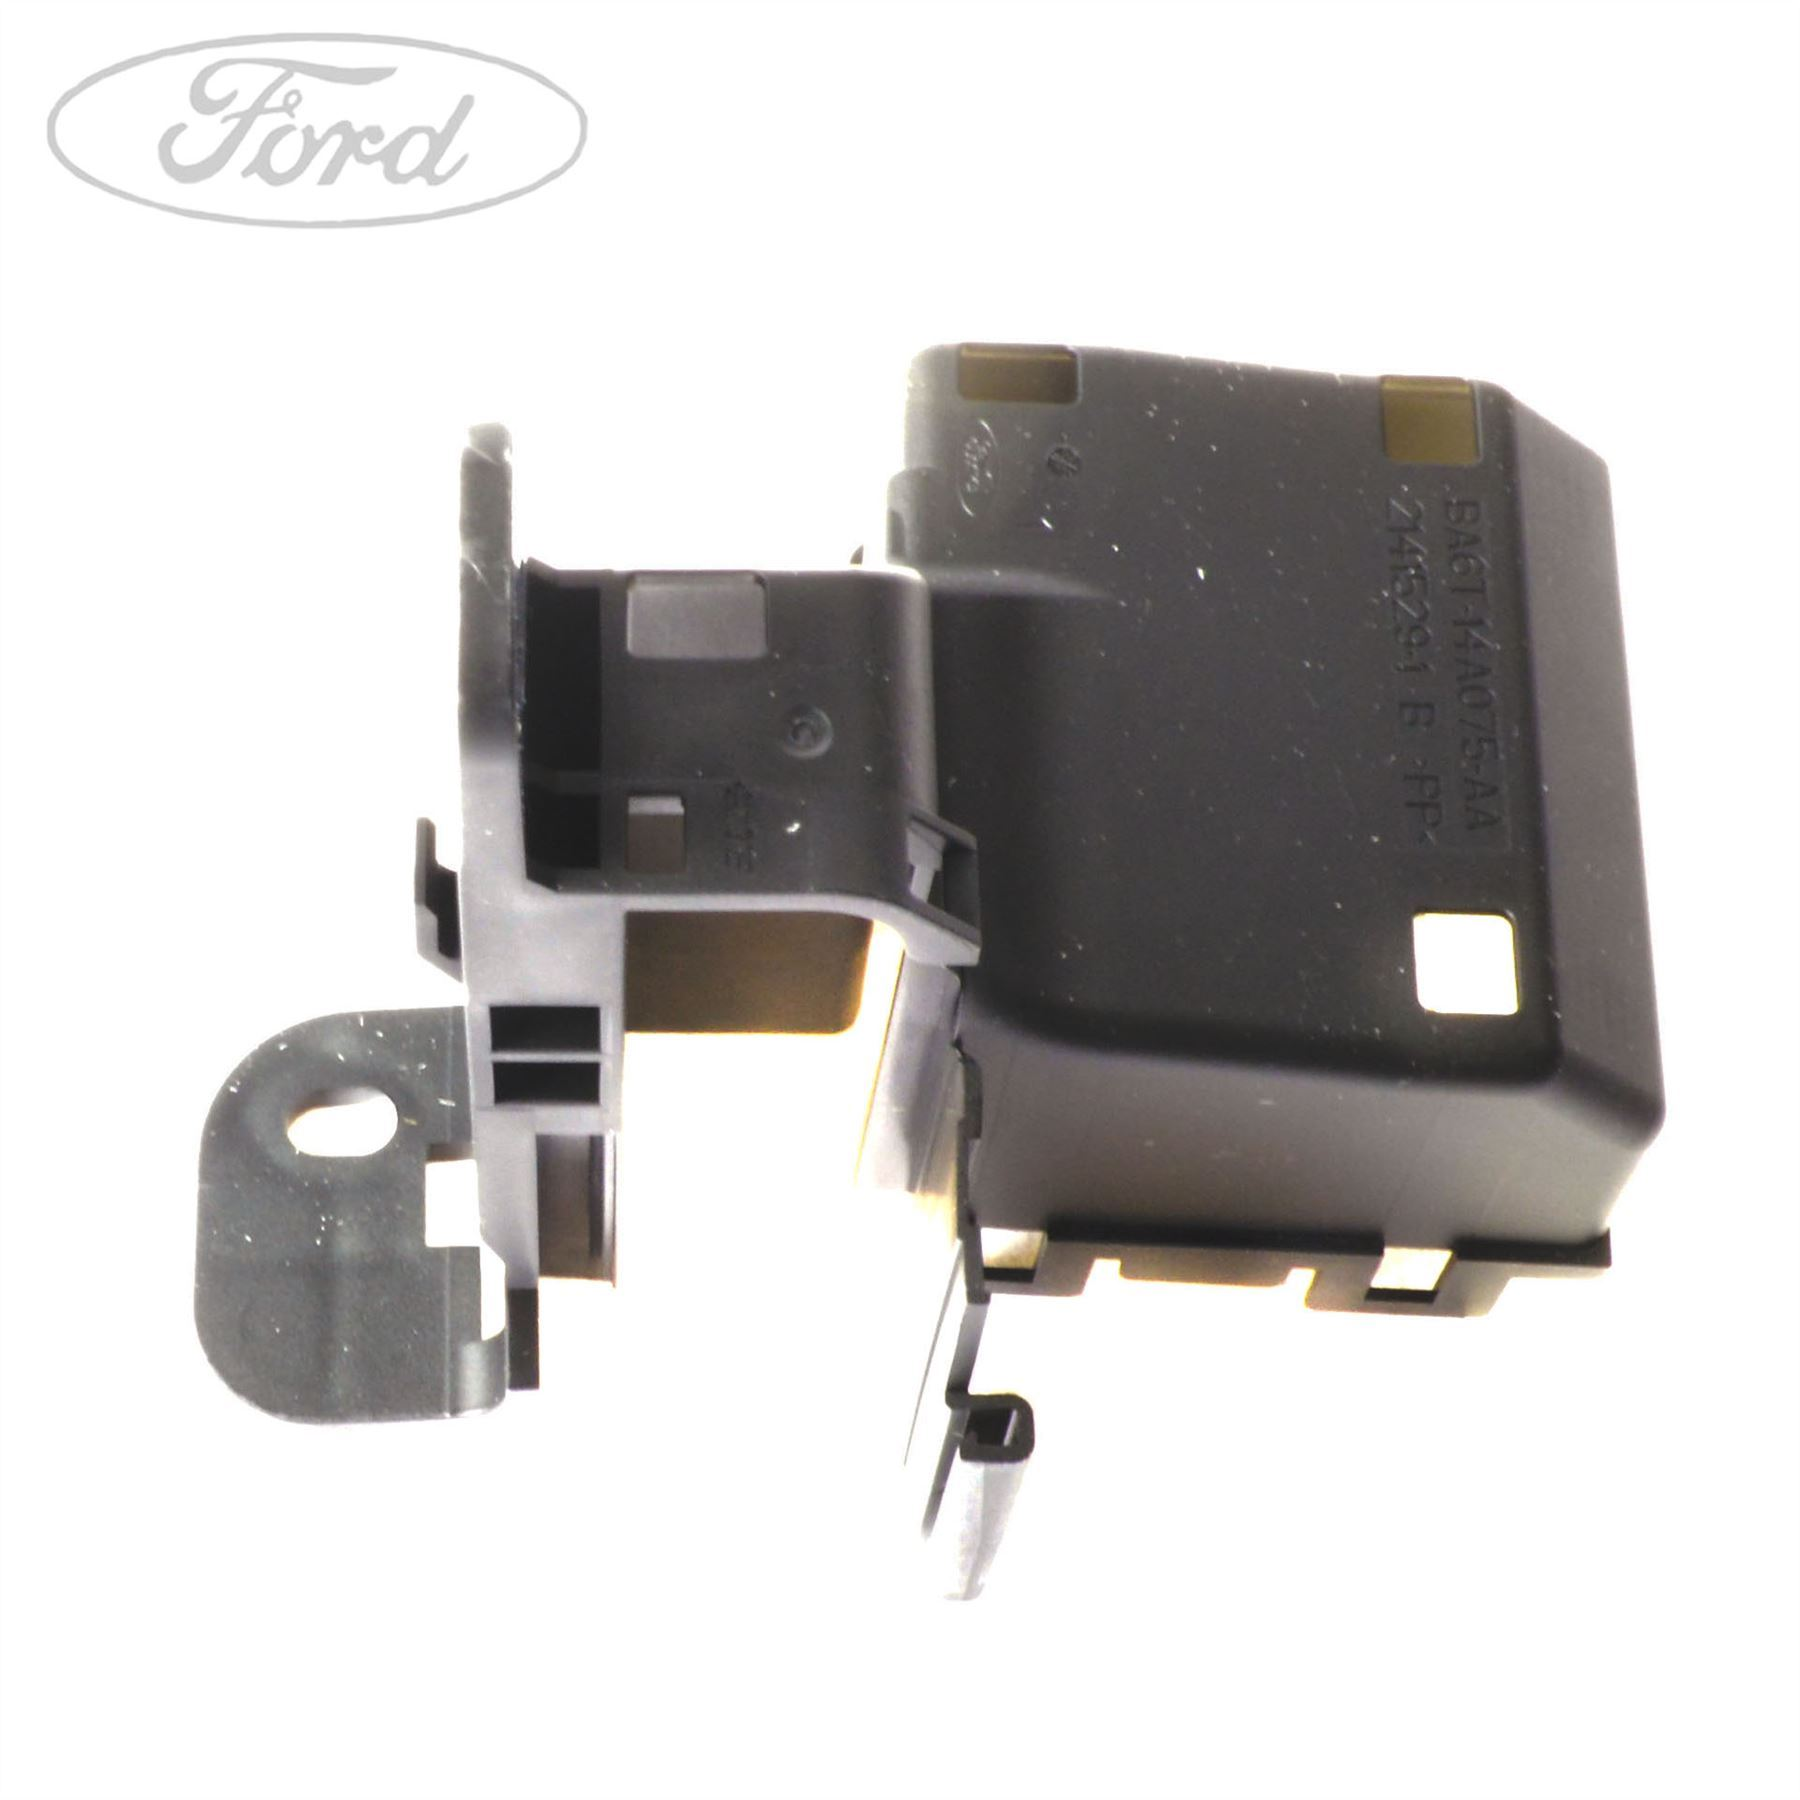 Ford F 150 Fuse Box Location Moreover Ford Fusion Fuse Box Diagram On